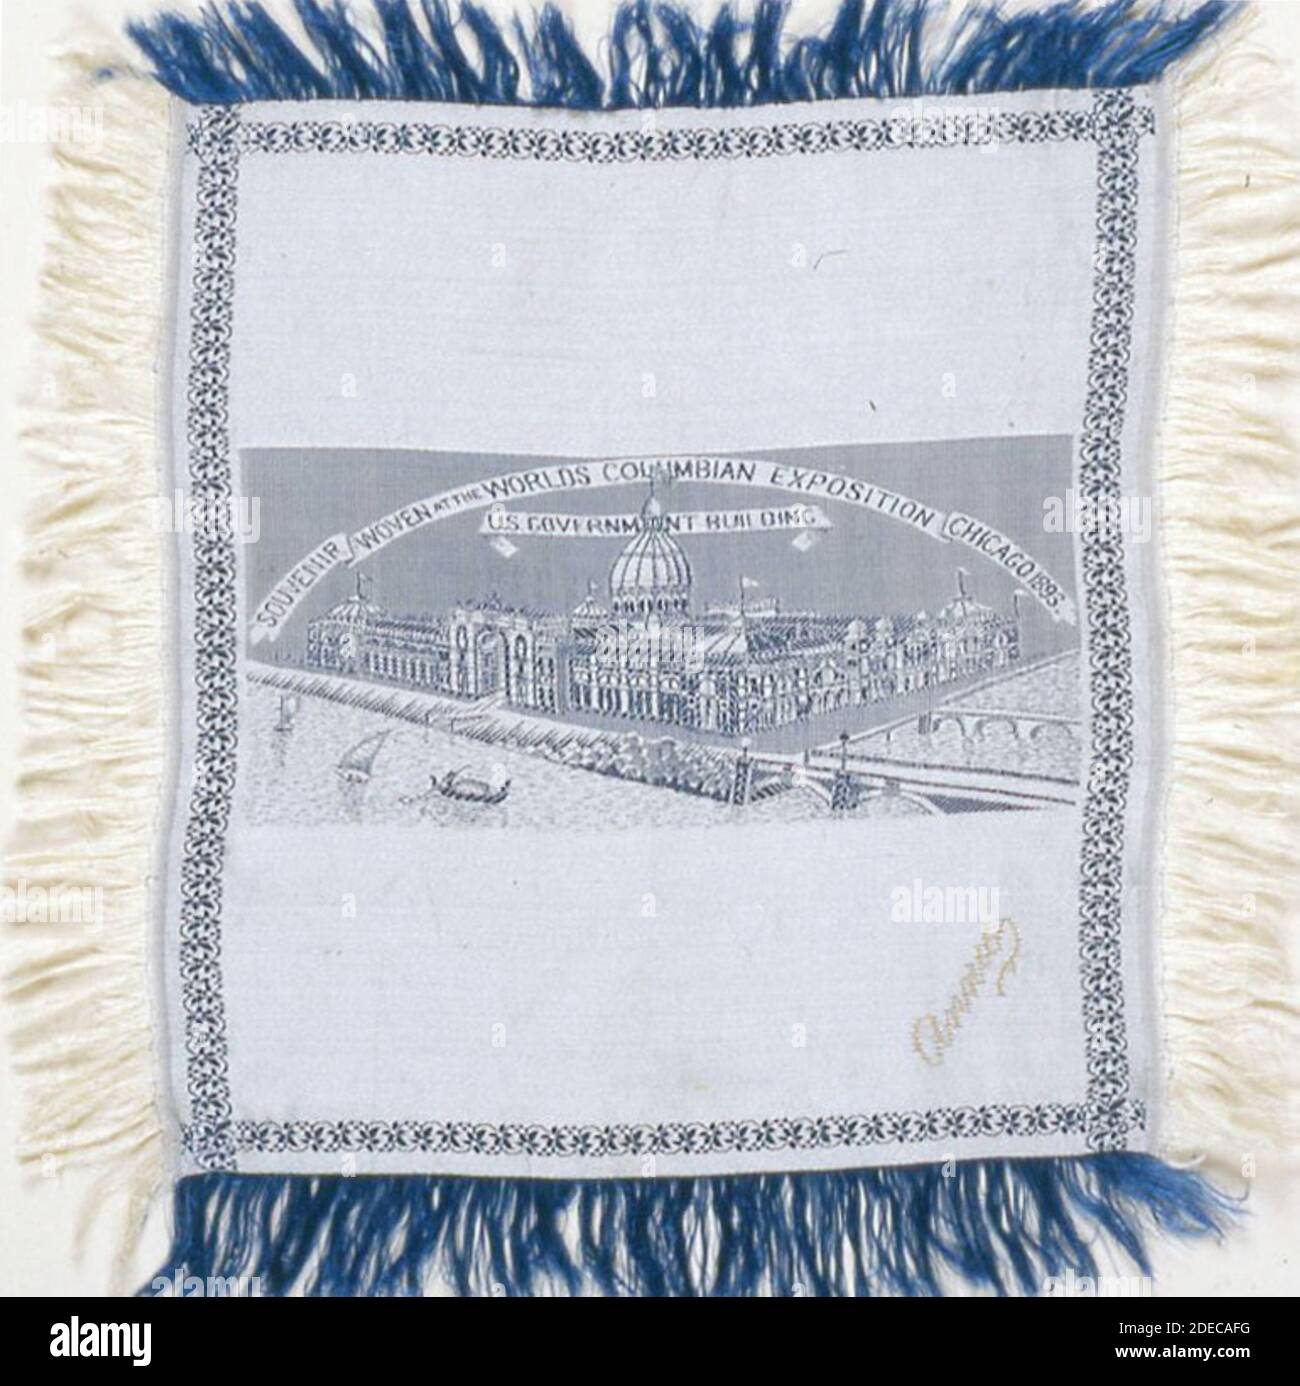 Medium:  Silk; weft-float faced satin weave self-patterned by main warp floats and areas of plain interlacing; extended ground weft cut fringe; woven on loom with Jacquard attachment; signature embroidered in couching Stock Photo